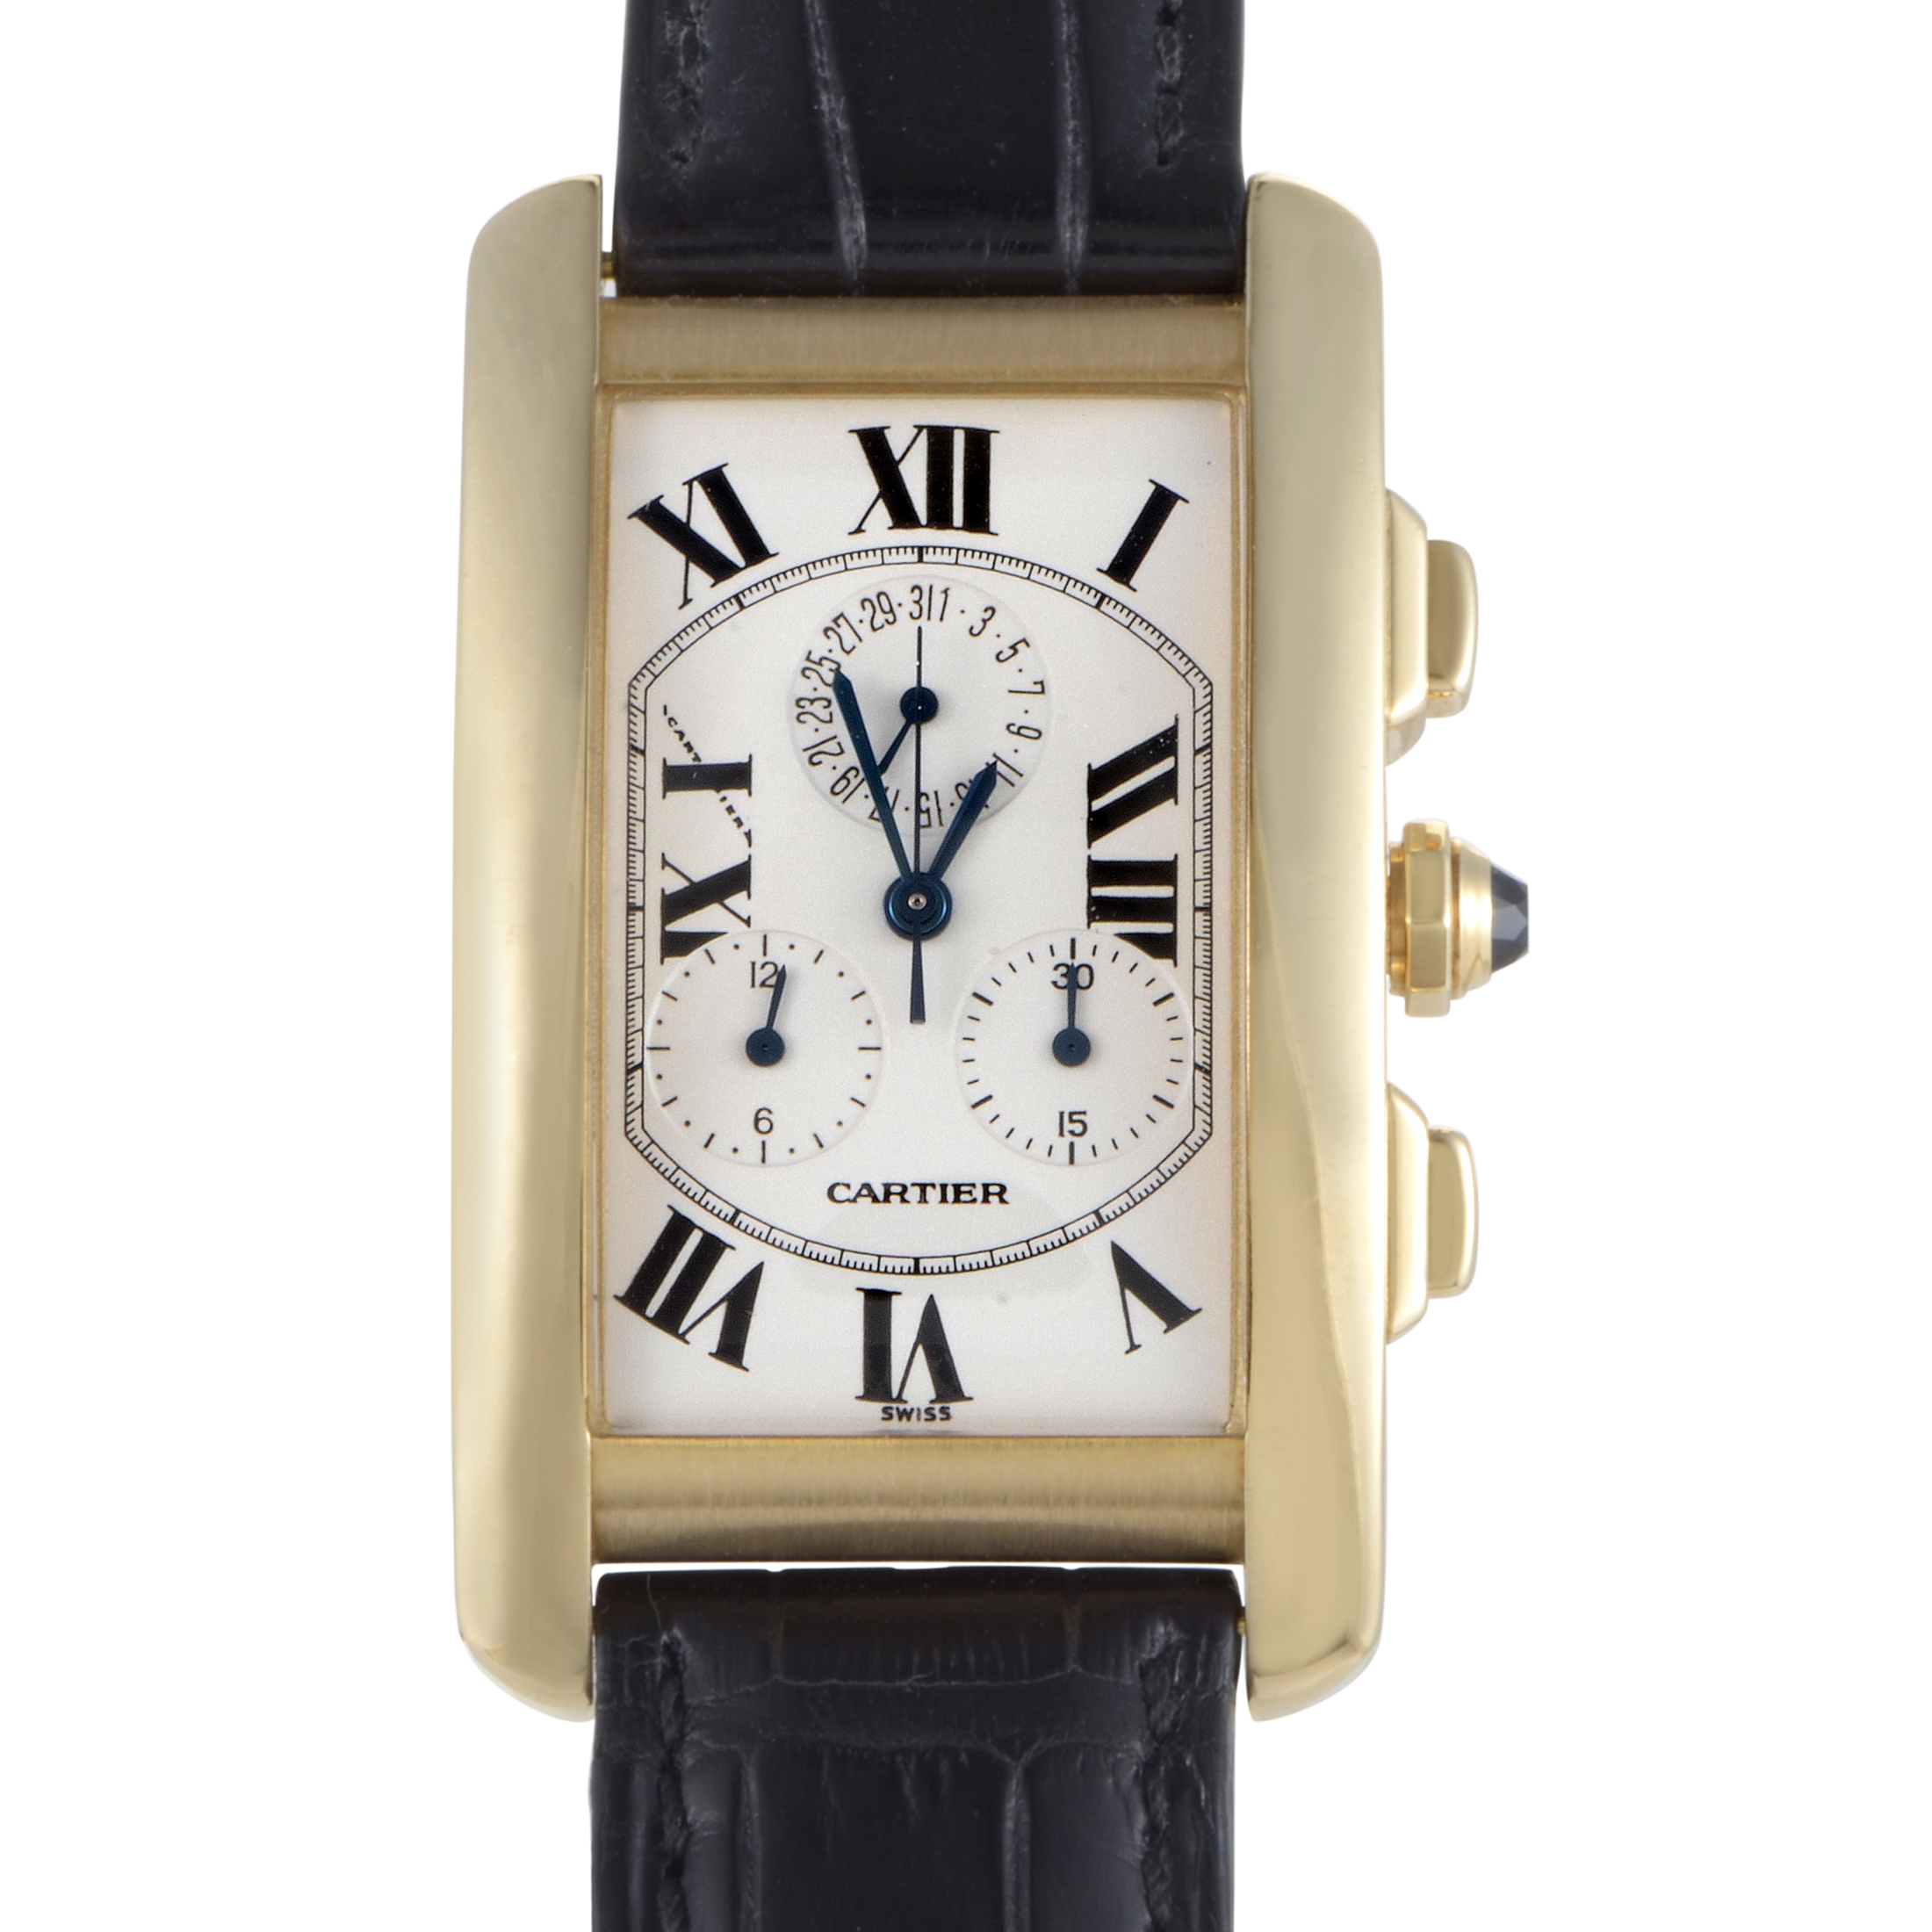 Cartier Tank Americaine Men's Quartz Chronograph Watch W2605856